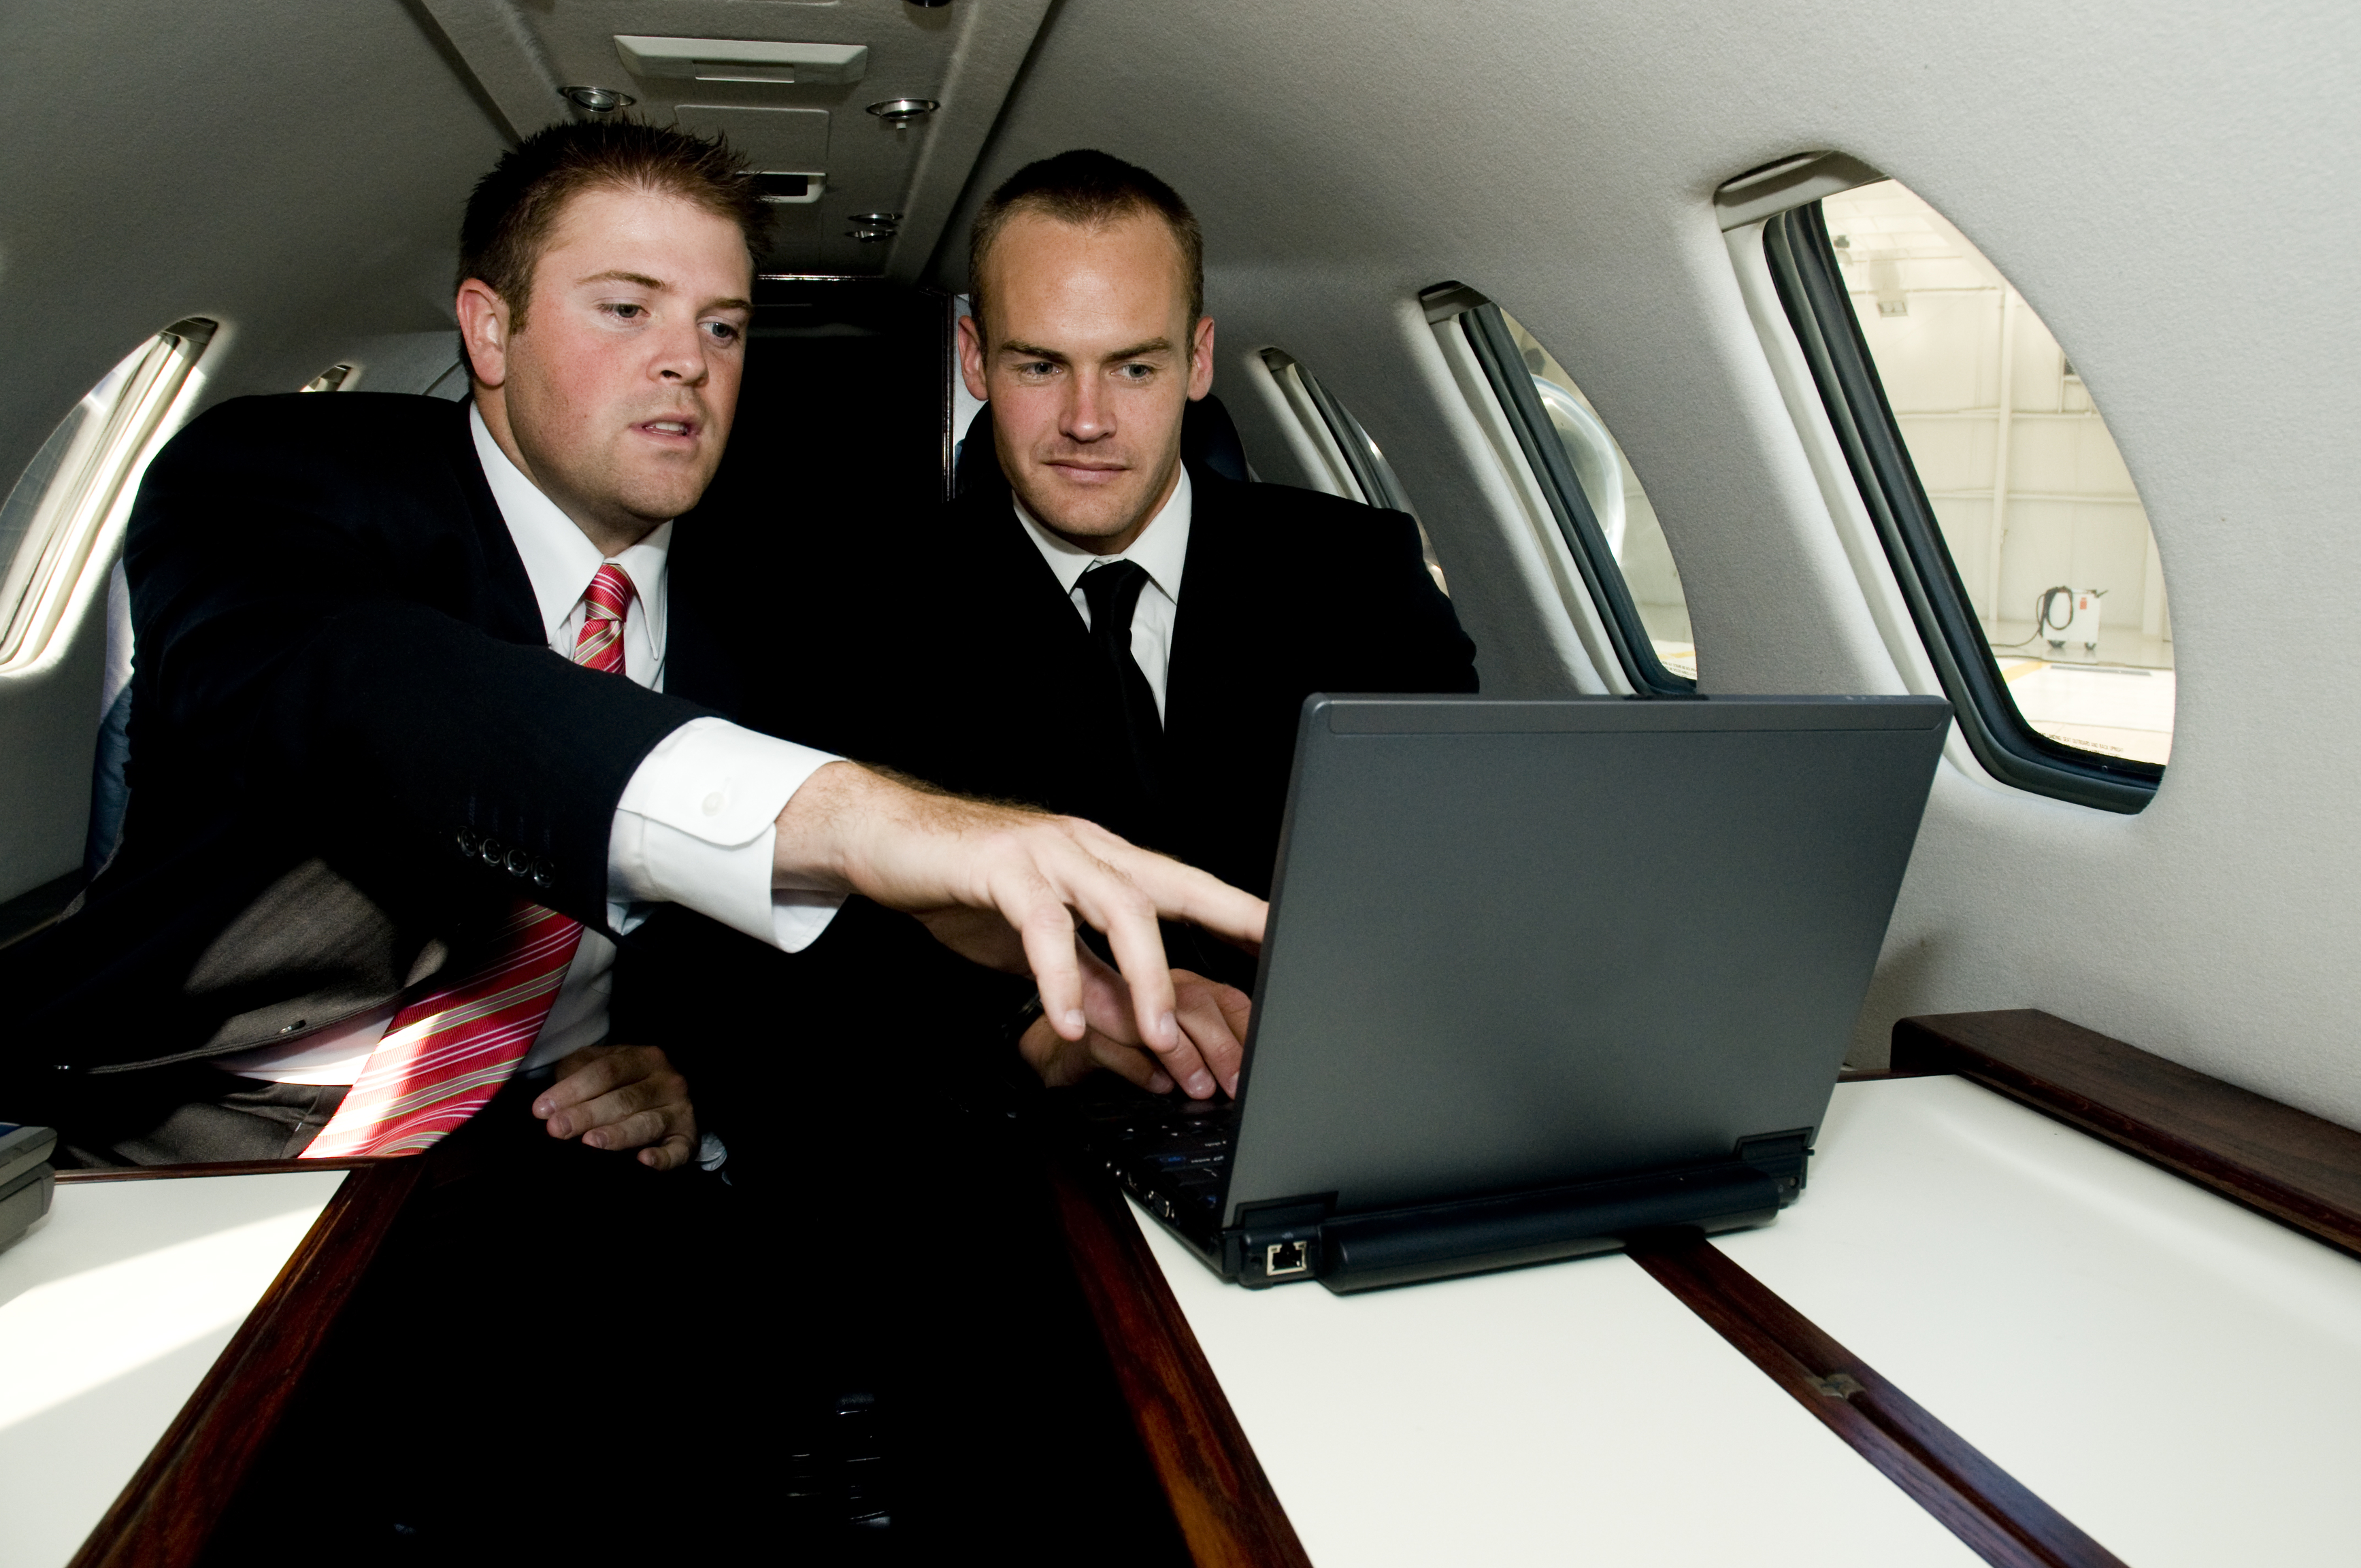 Executive plane charter new york area. Plane charter for business executives.